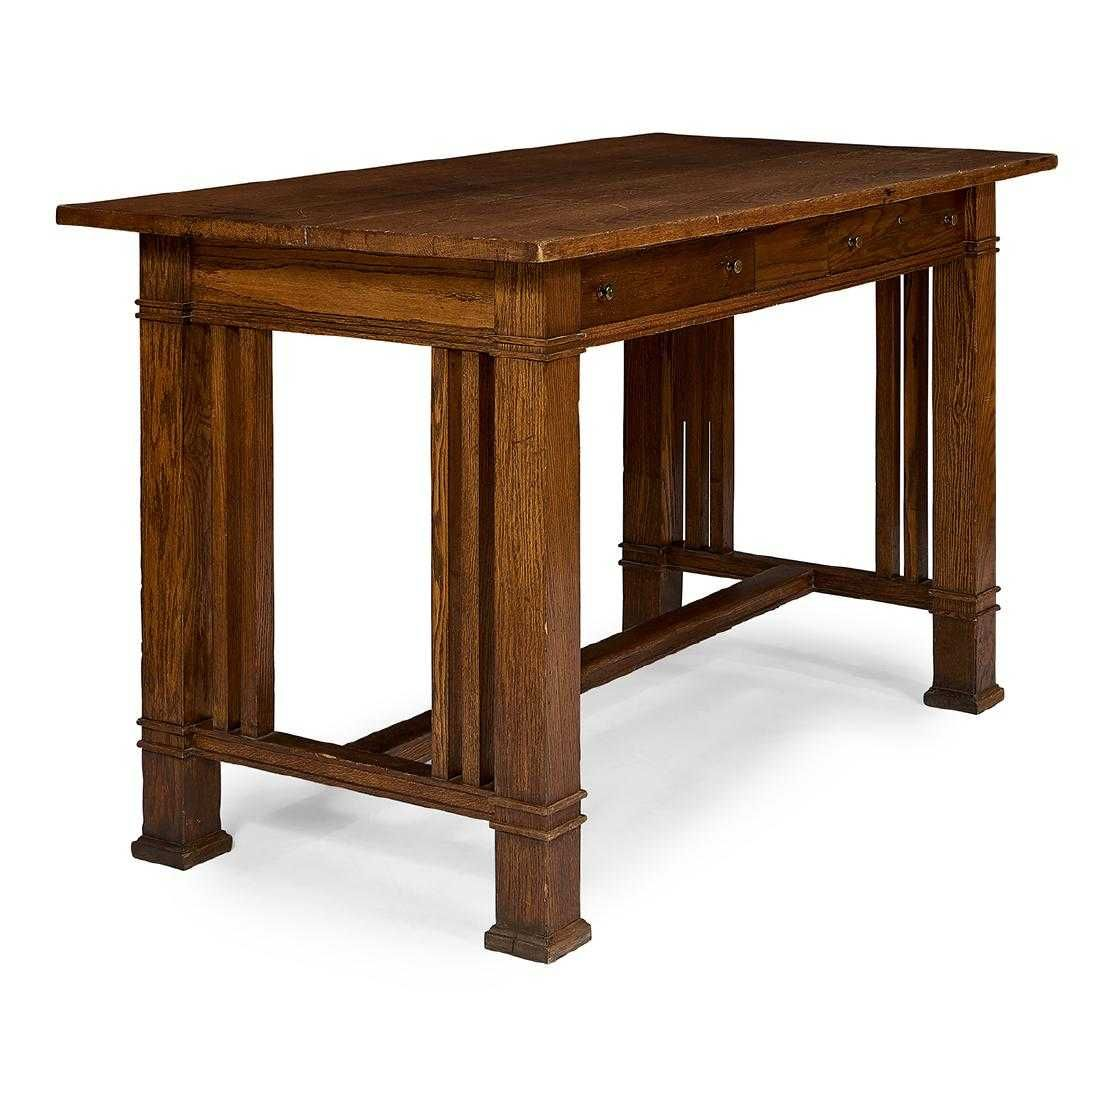 Frank Lloyd Wright / Frank L. Smith Bank desk (With images